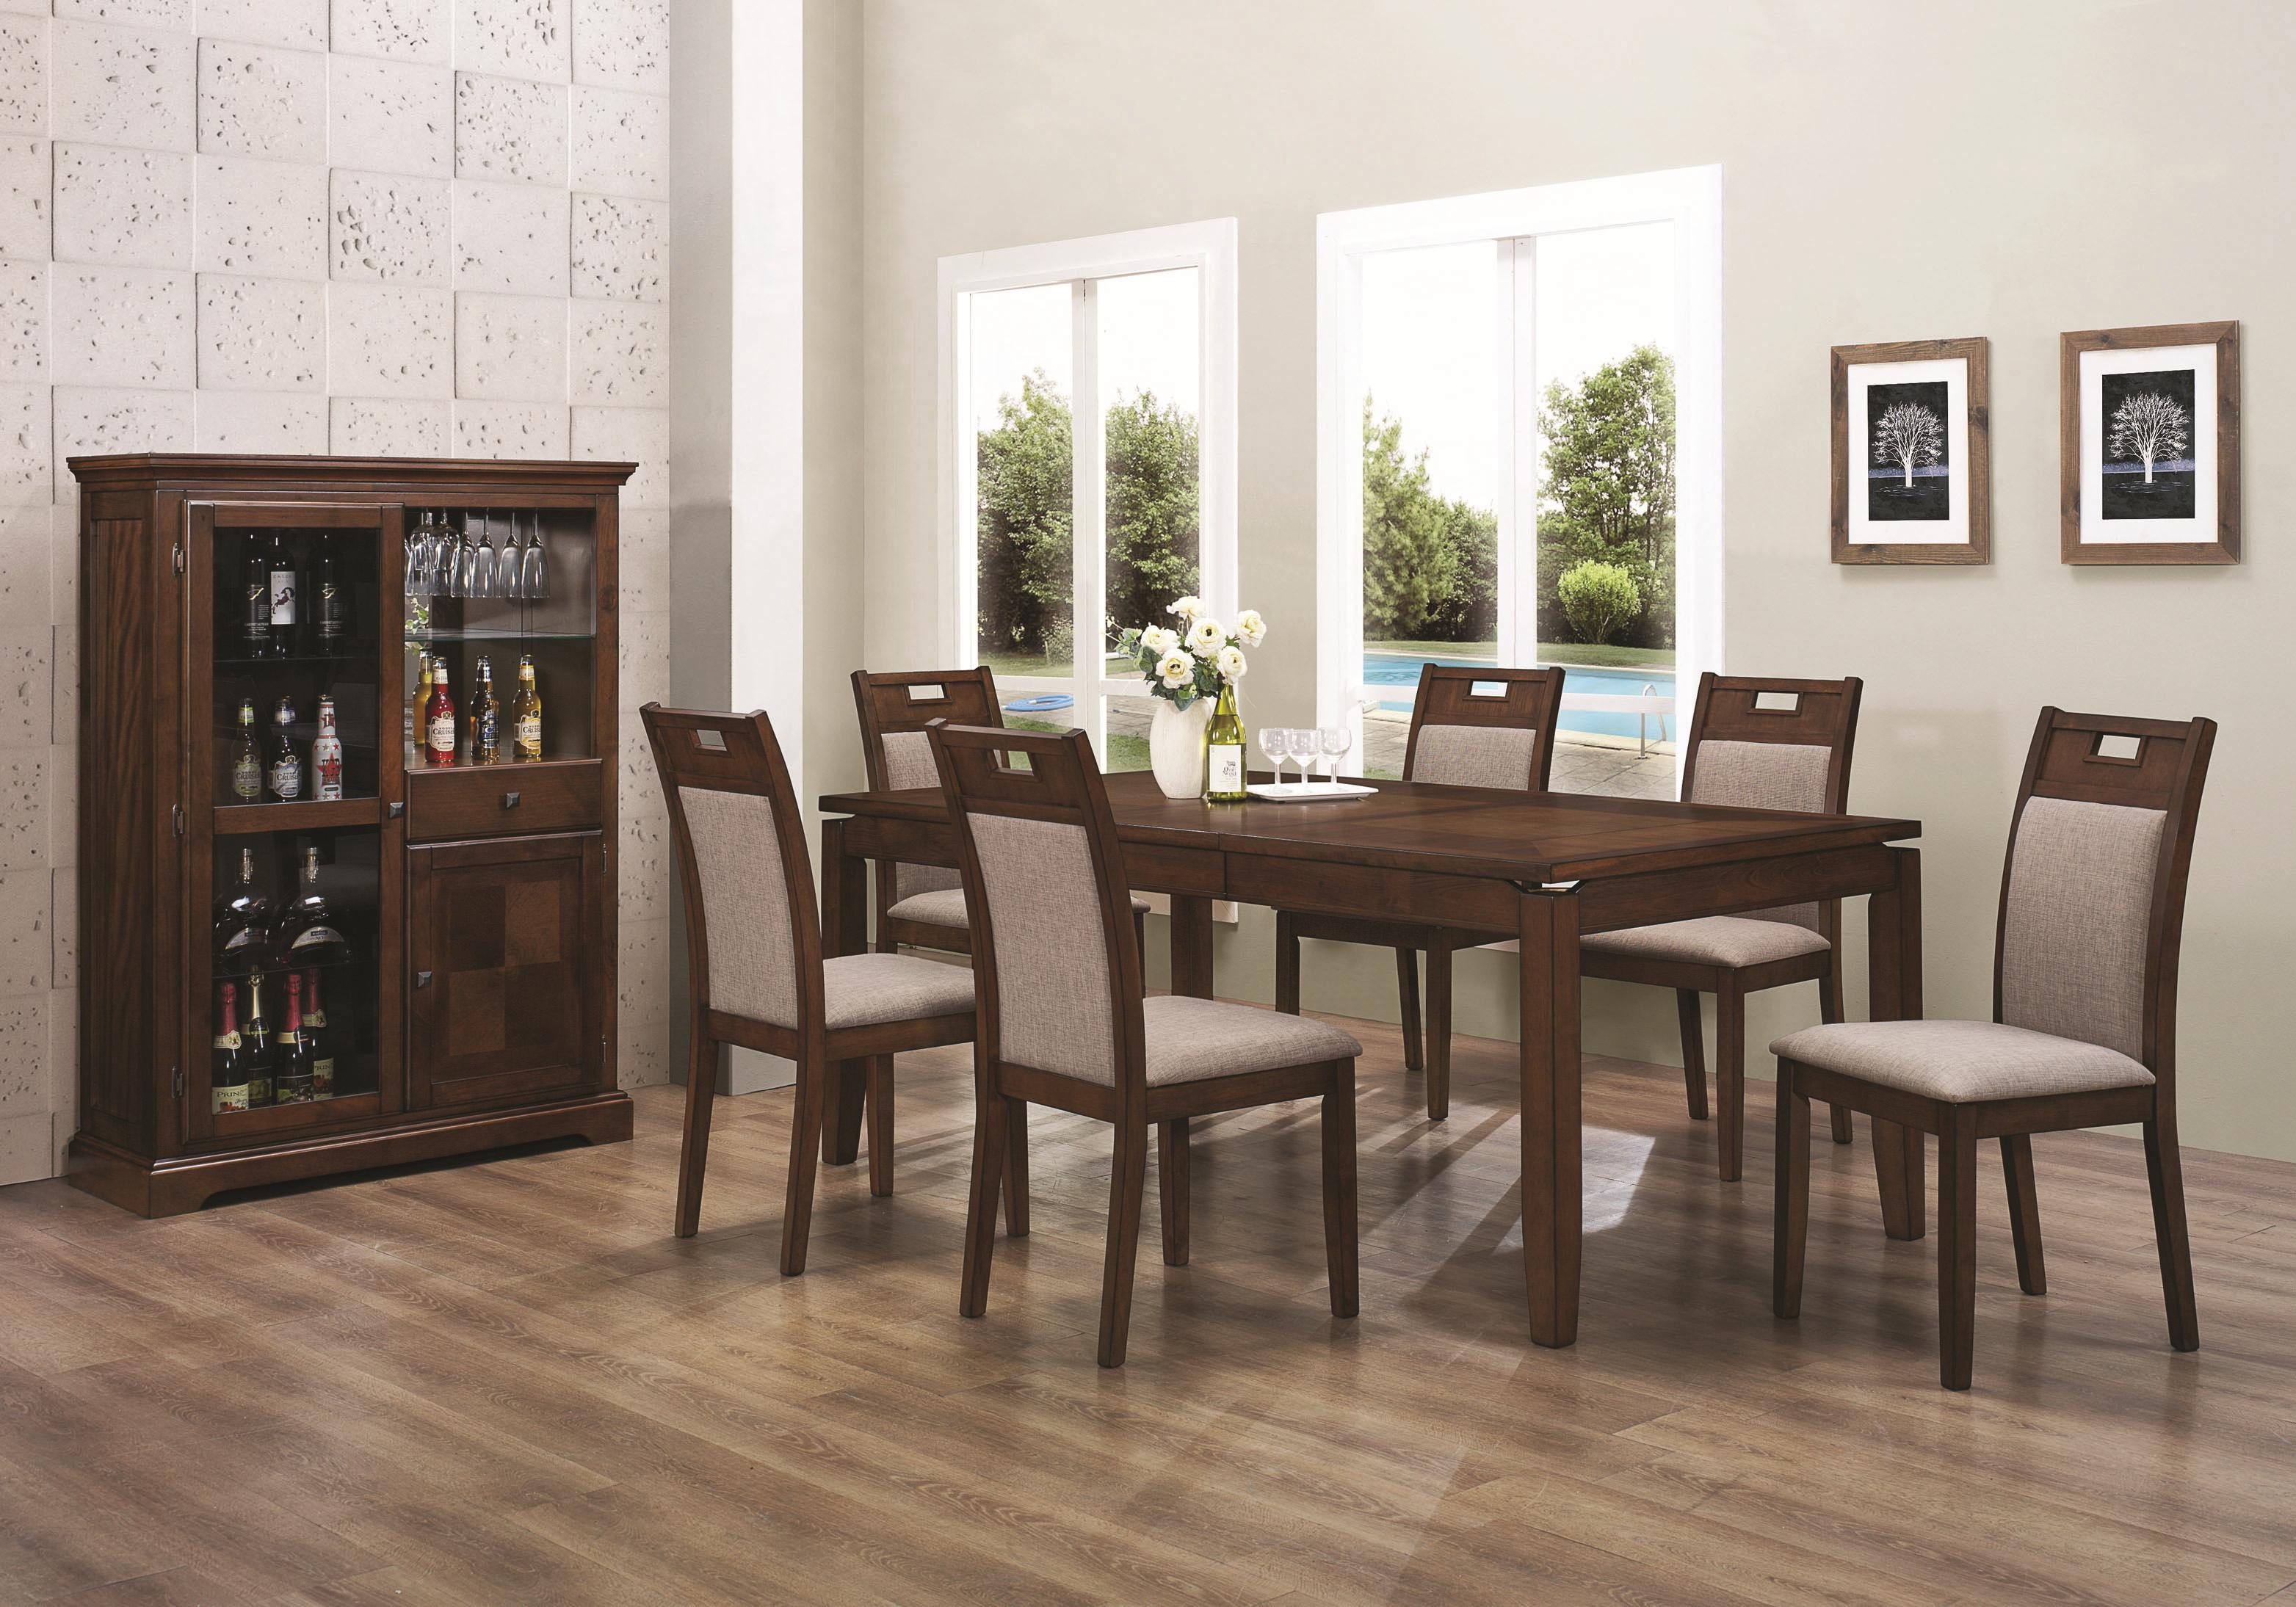 basic dining table and chairs. simple dining table designs simple